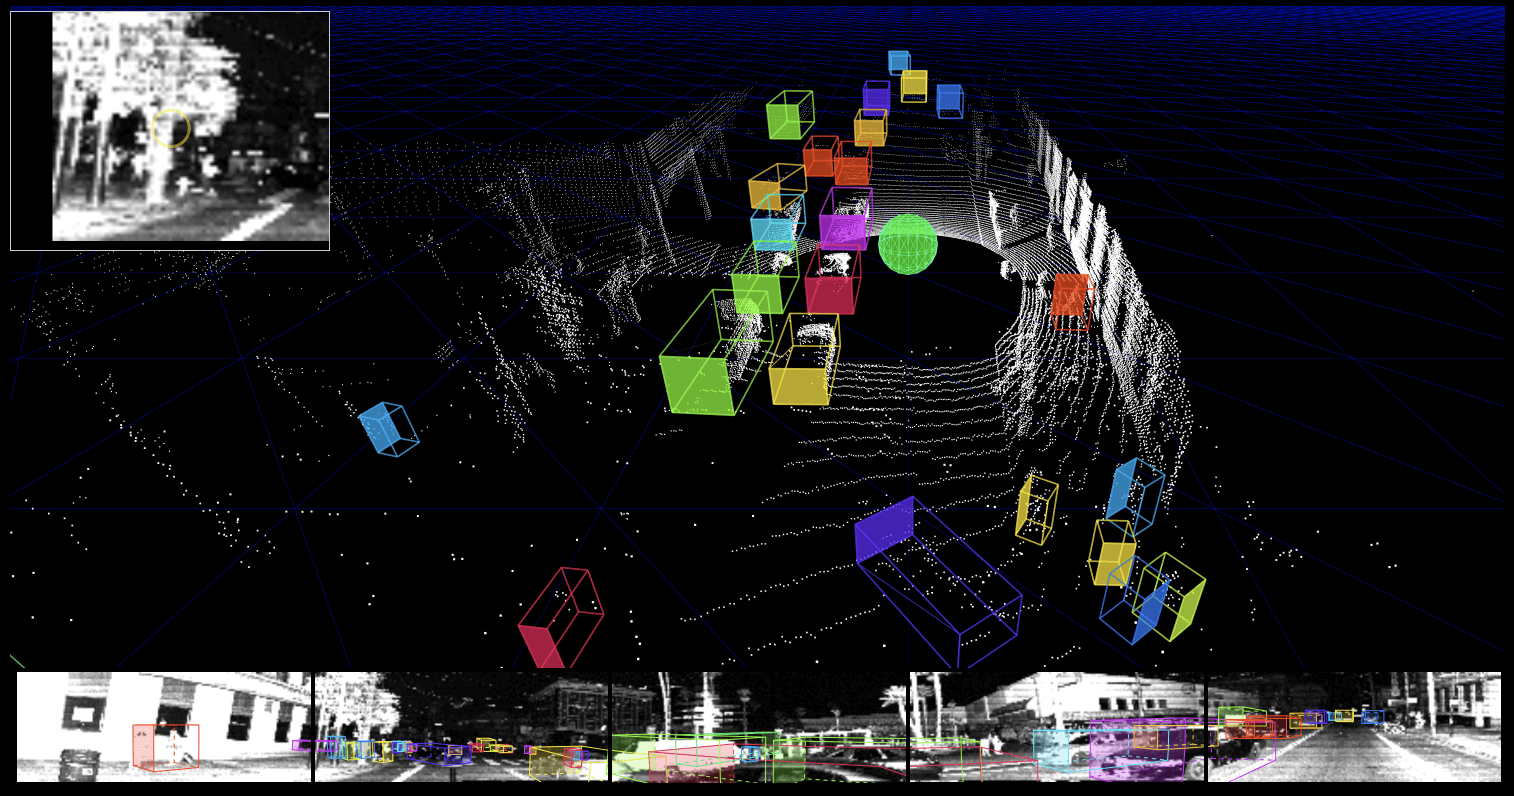 Point cloud computed only from depth information encoded in image pixels.